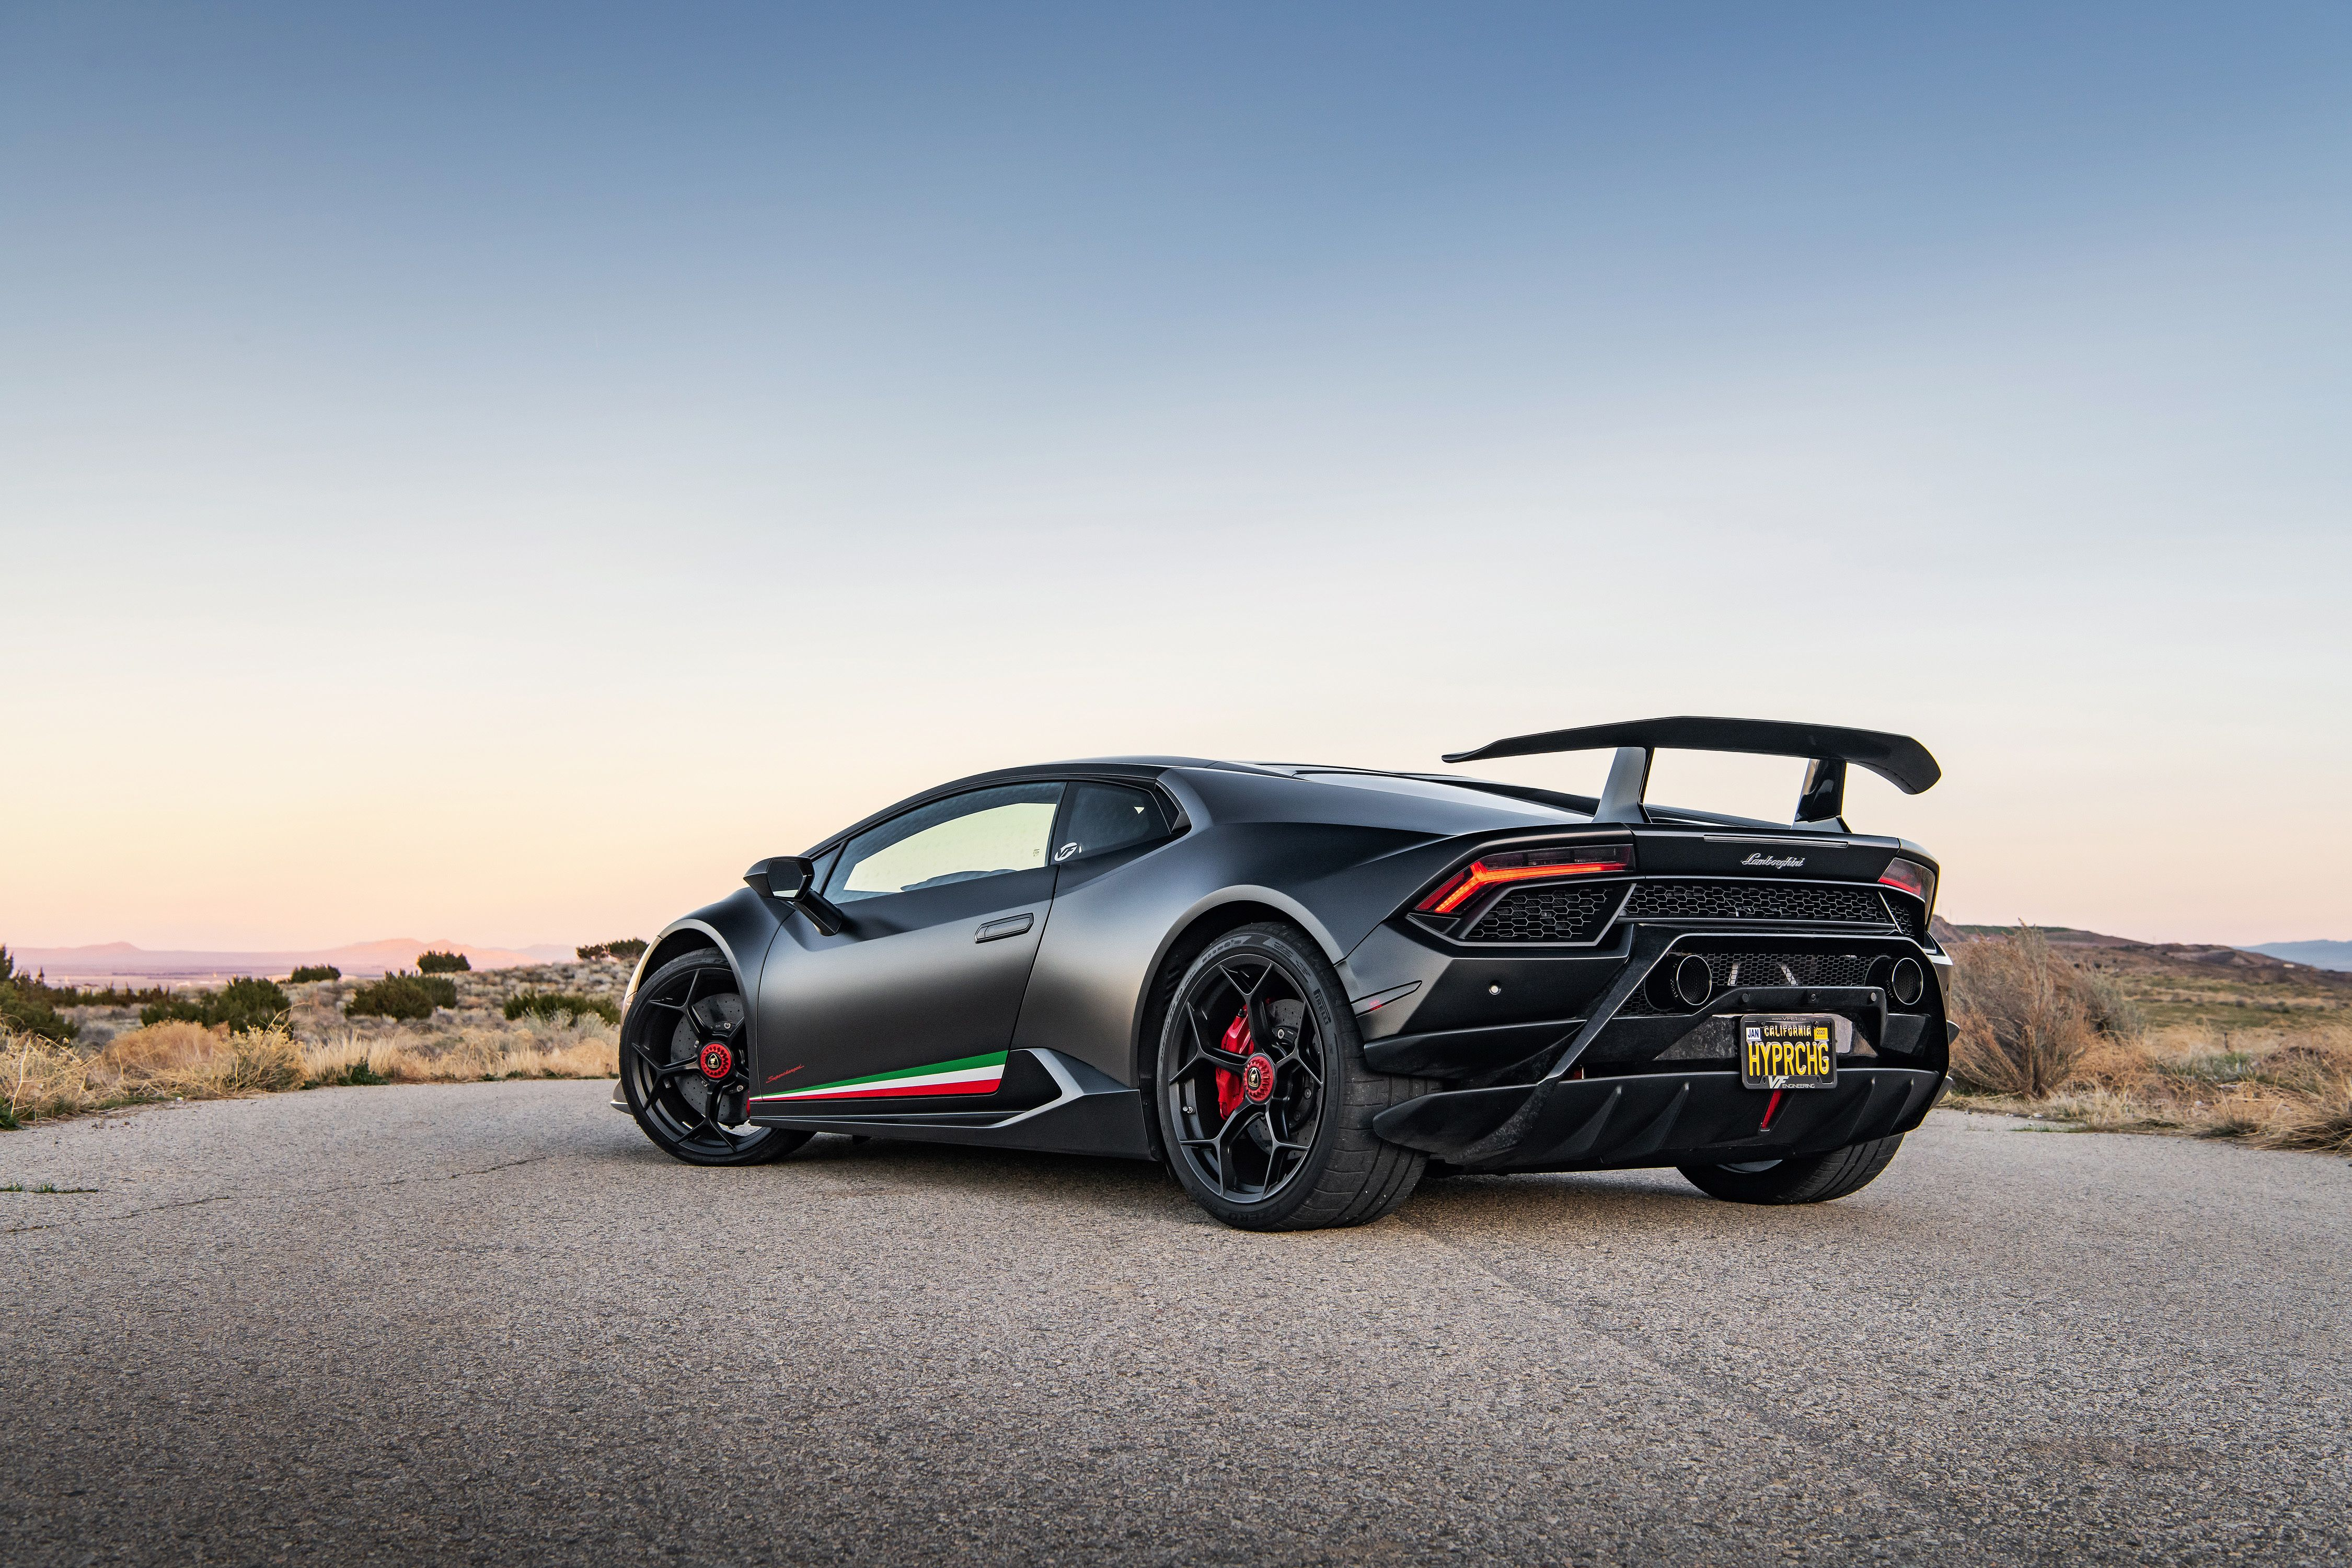 Vf Engineering Lamborghini Huracan Performante 2020 Rear Hd Cars 4k Wallpapers Images Backgrounds Photos And Pictures